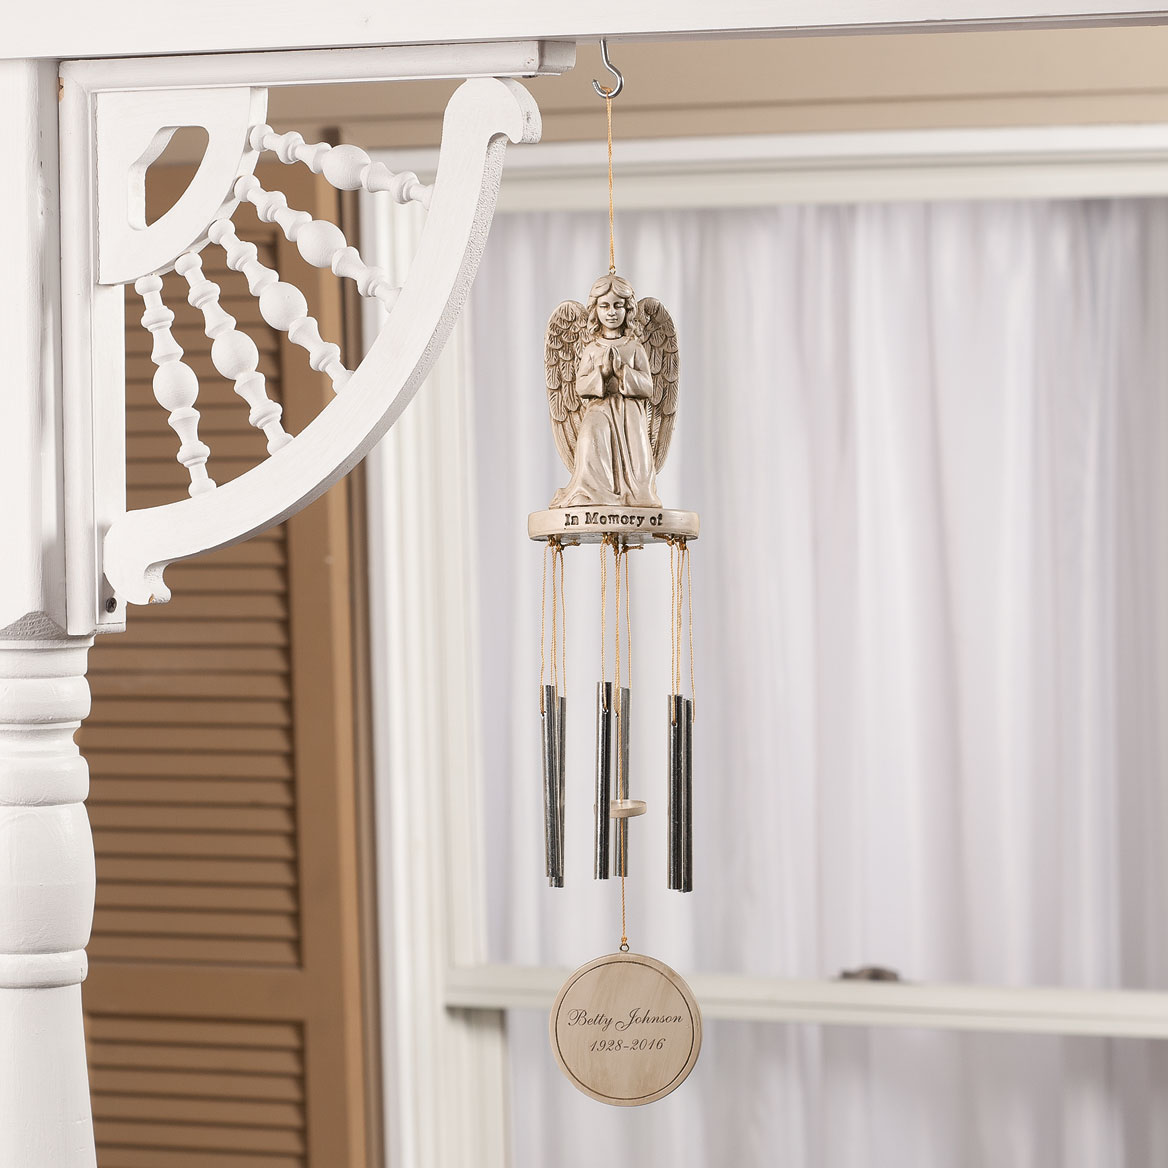 Personalized Memorial Windchime by Fox River™ Creations-359497